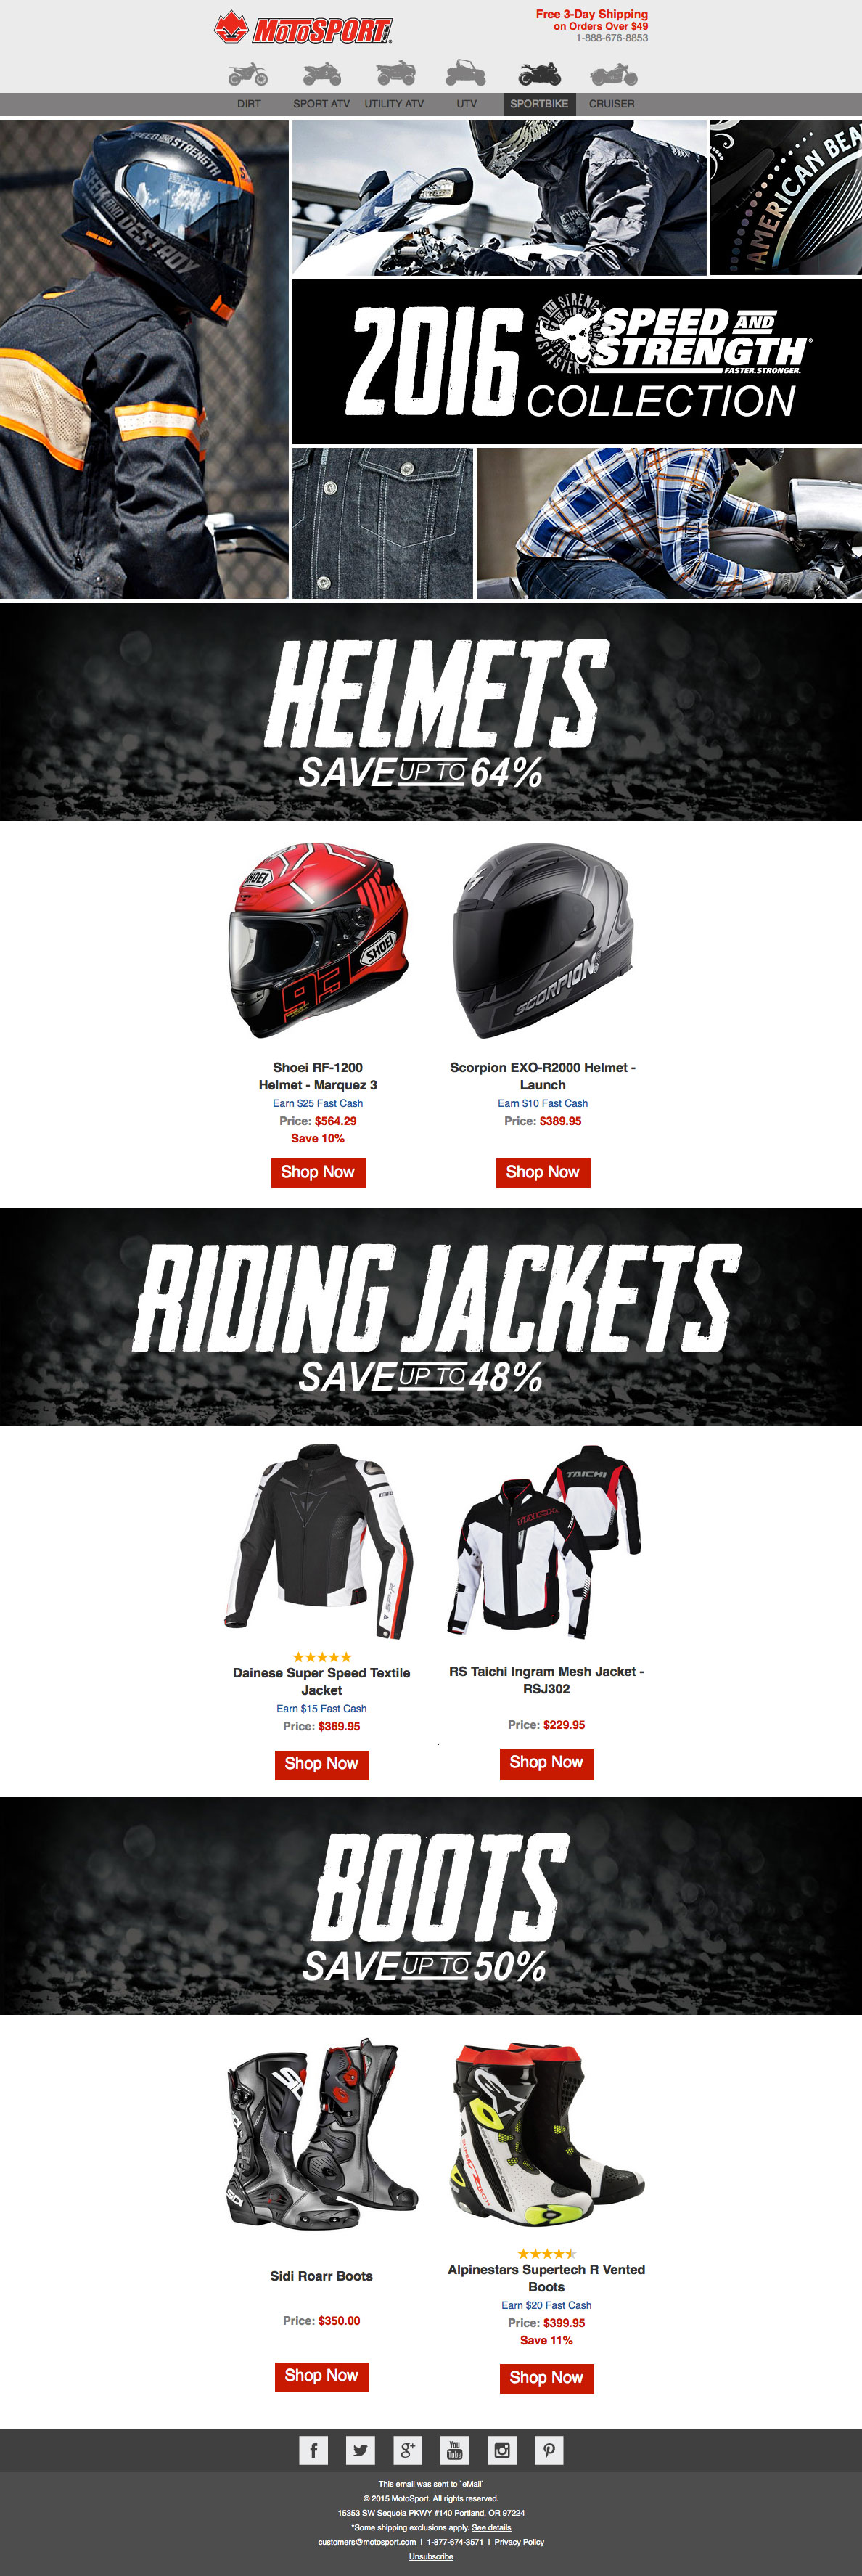 Motosport Speed and Strength Sportbike email design